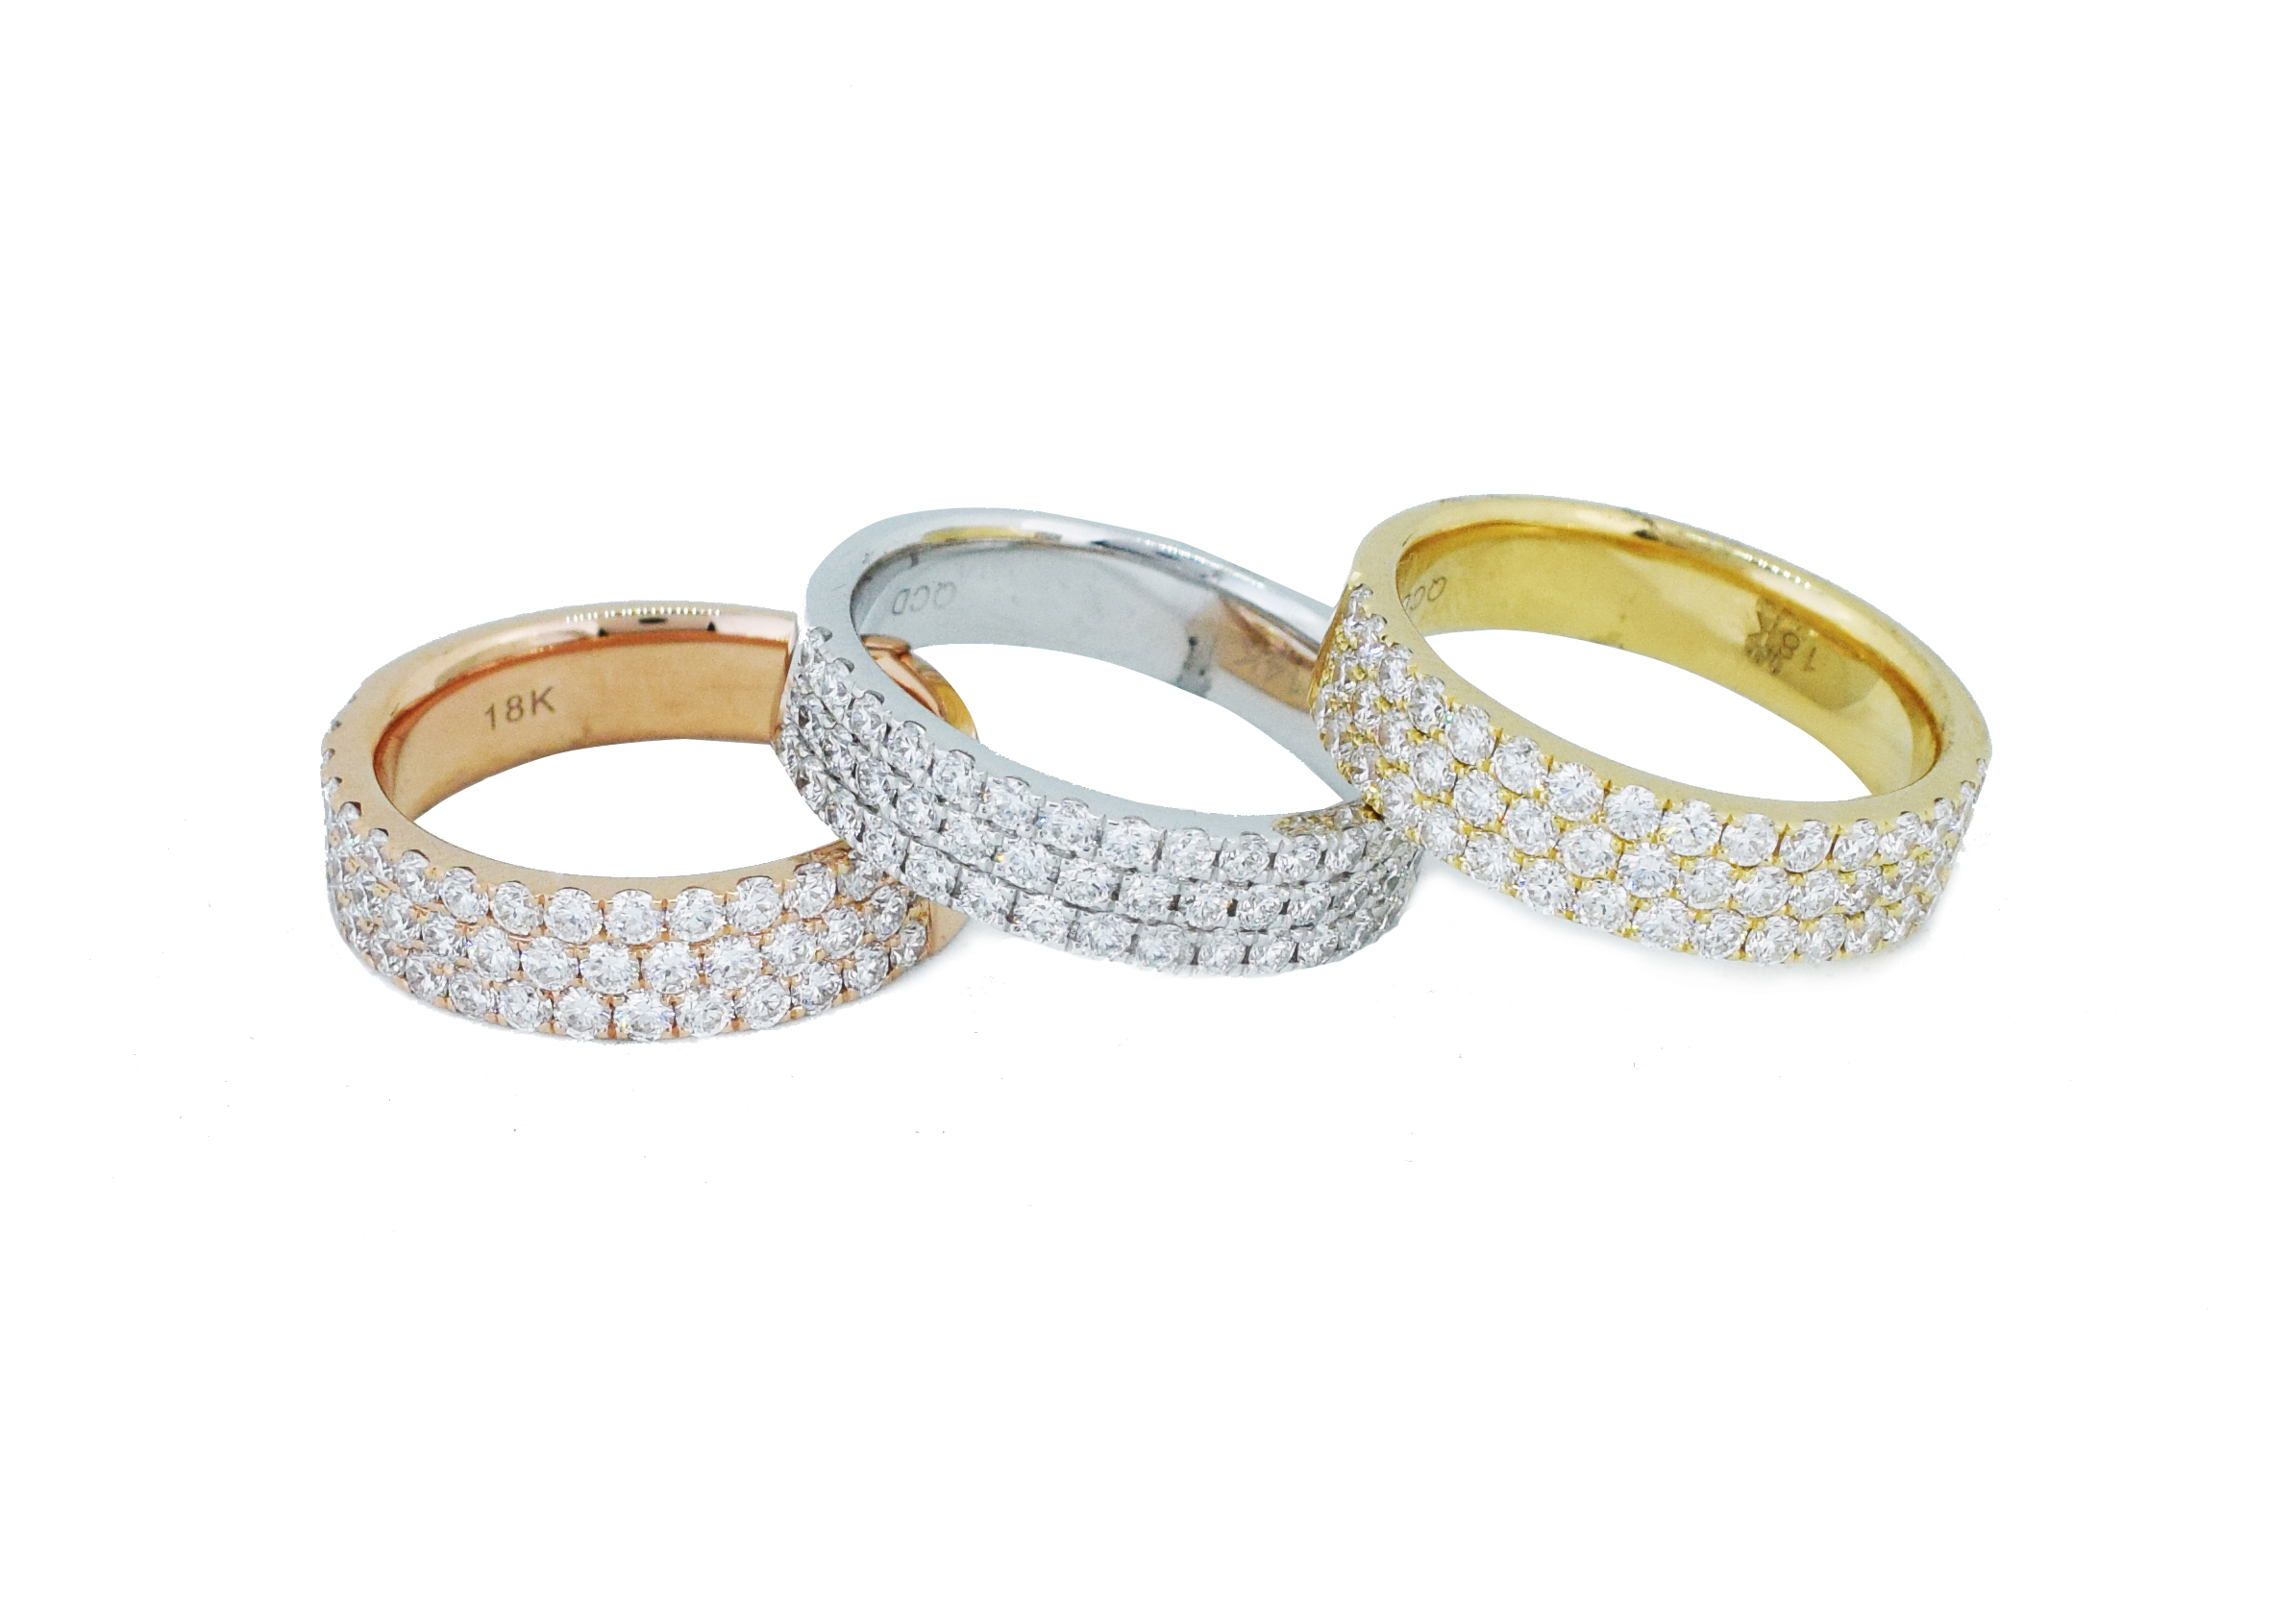 3 diamond bands